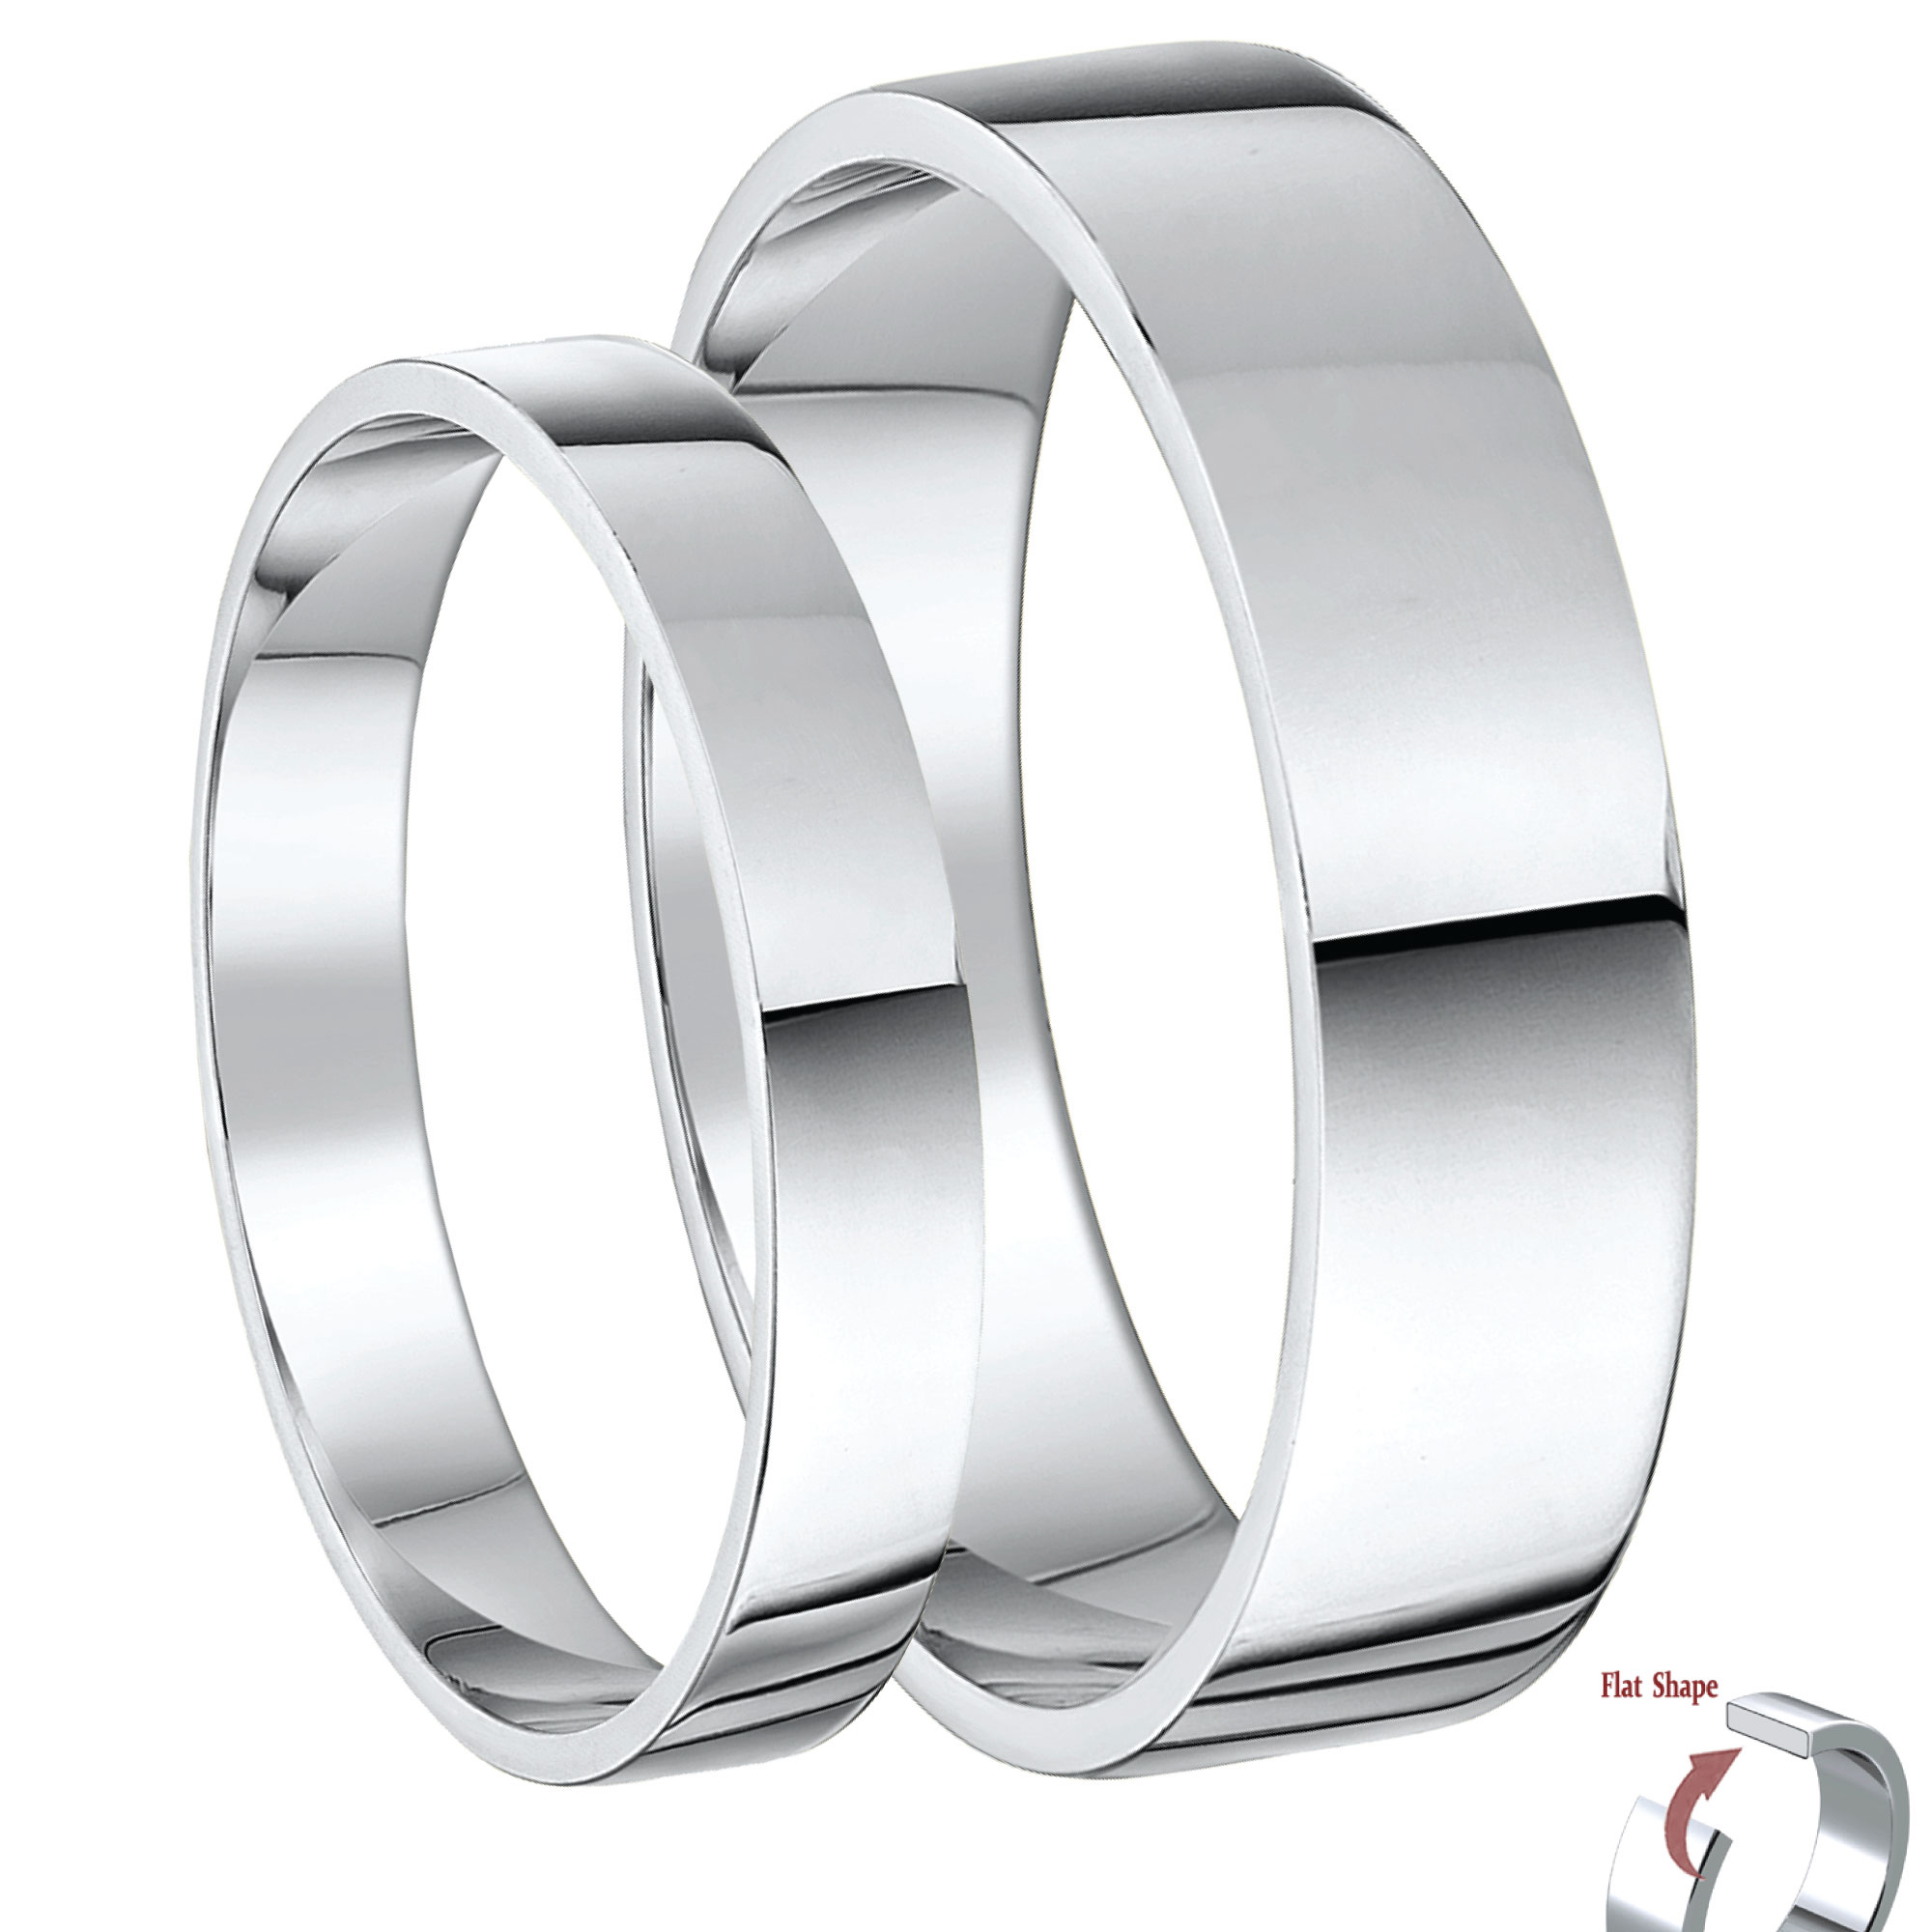 functional michaelkorsinc steel gtool wedding rings groom esd ring of